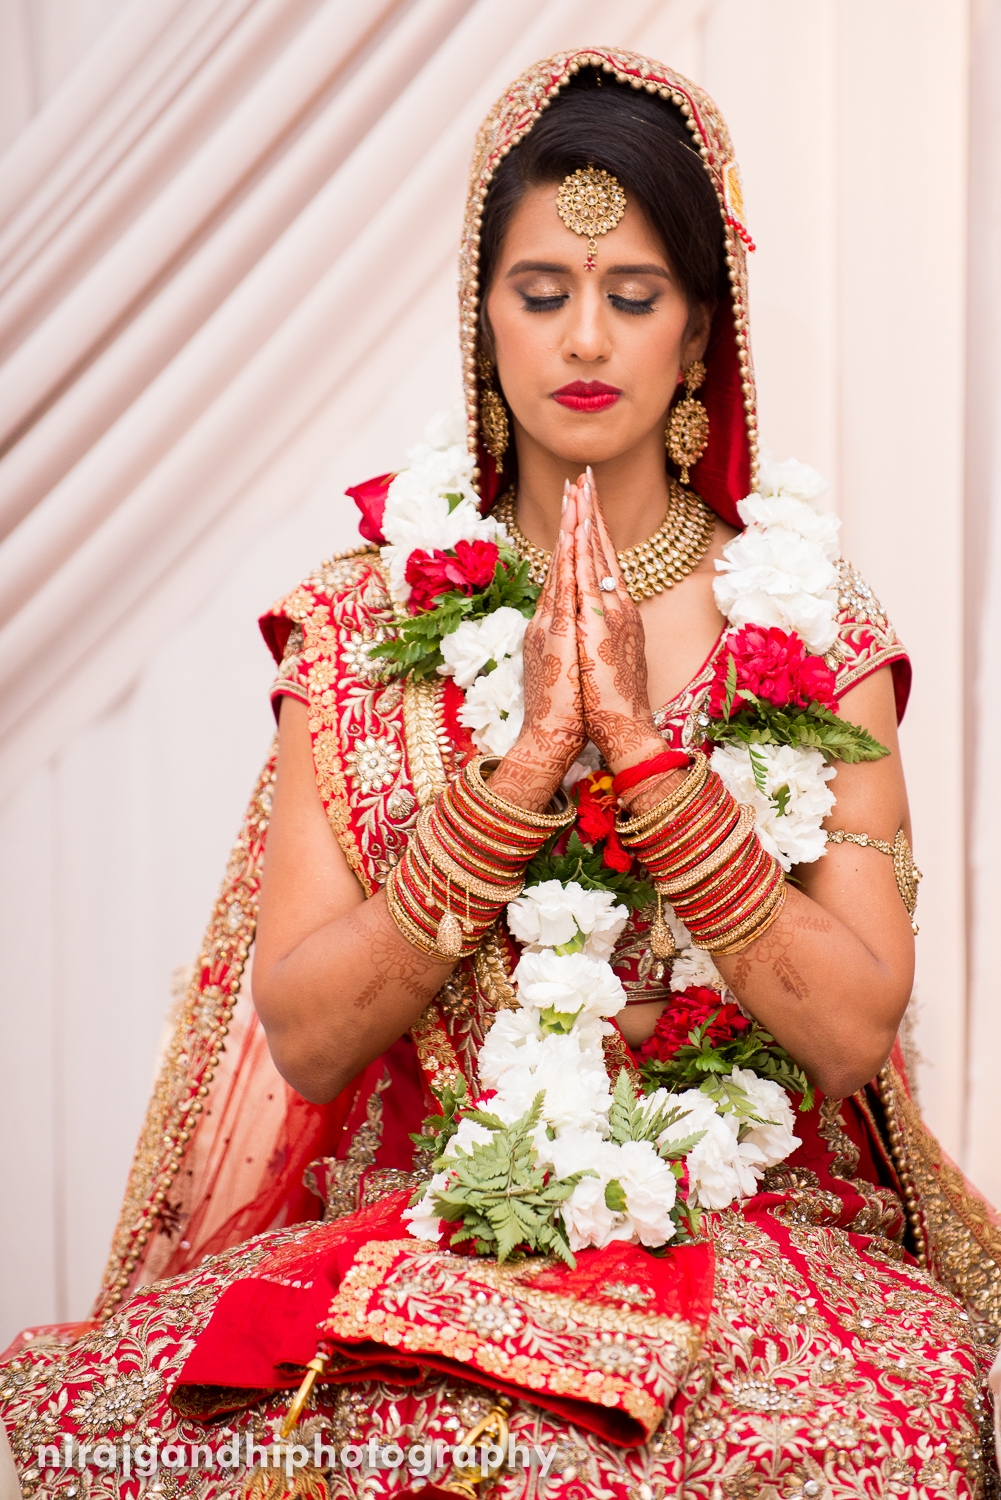 Sadhna + Rishi - Wedding-836.jpg